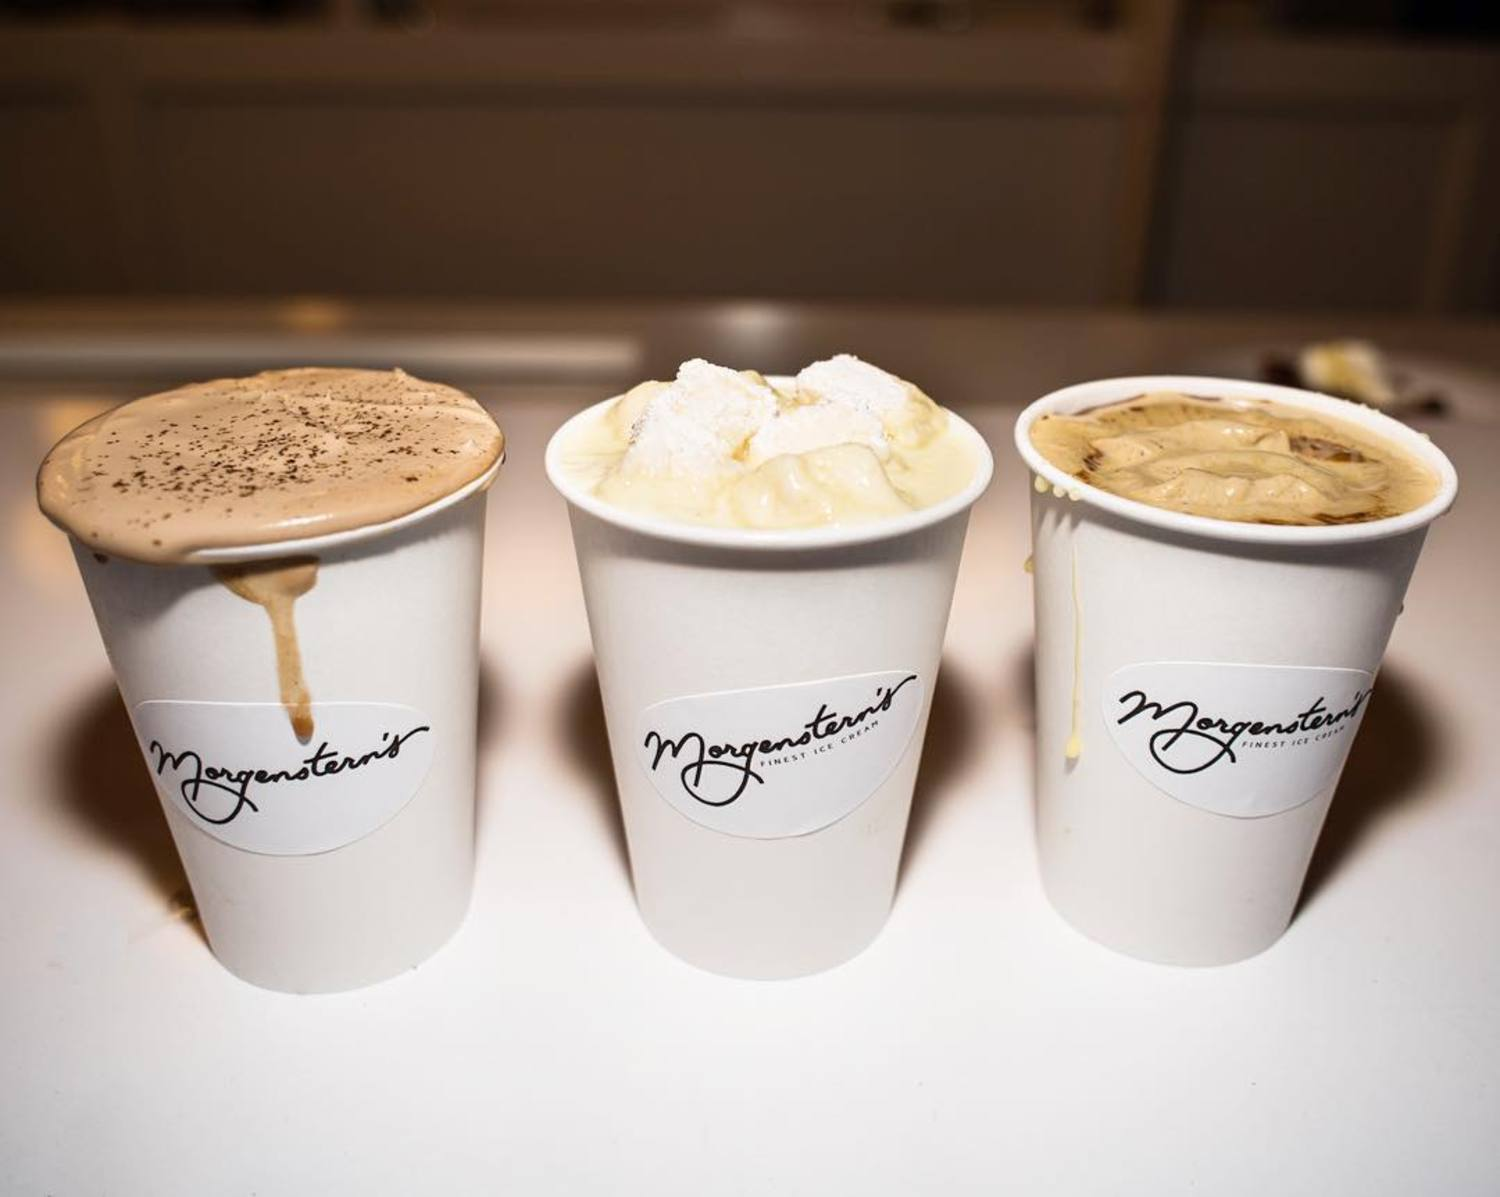 Winter Hot Chocolates?  Preview today please from left to right: Szechuan Milk Chocolate Banana Durian White Chocolate (with banana durian marshmallows?  Stop it!  Yes #duriannation ) And of course Vietnamese Coffee Dark Chocolate with Condensed Milk.  Take the Sunday chill off with one of these piping hot beauties. #brrr